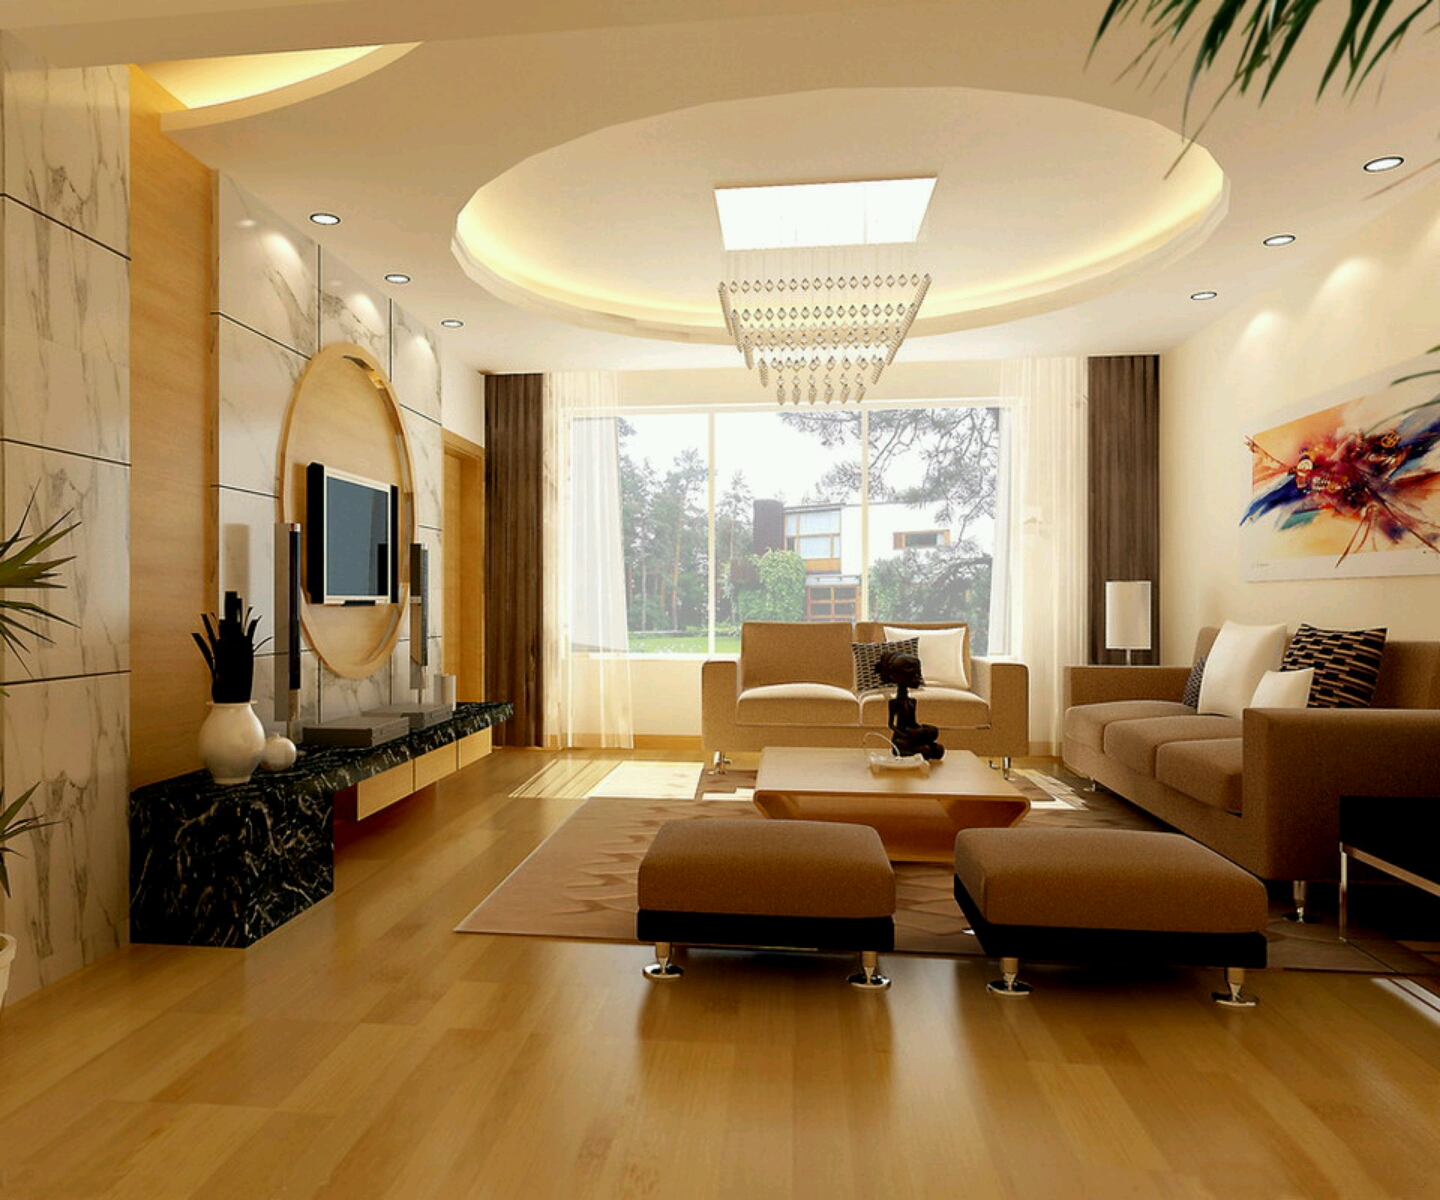 Modern interior decoration living rooms ceiling designs - Interior living room design ideas ...